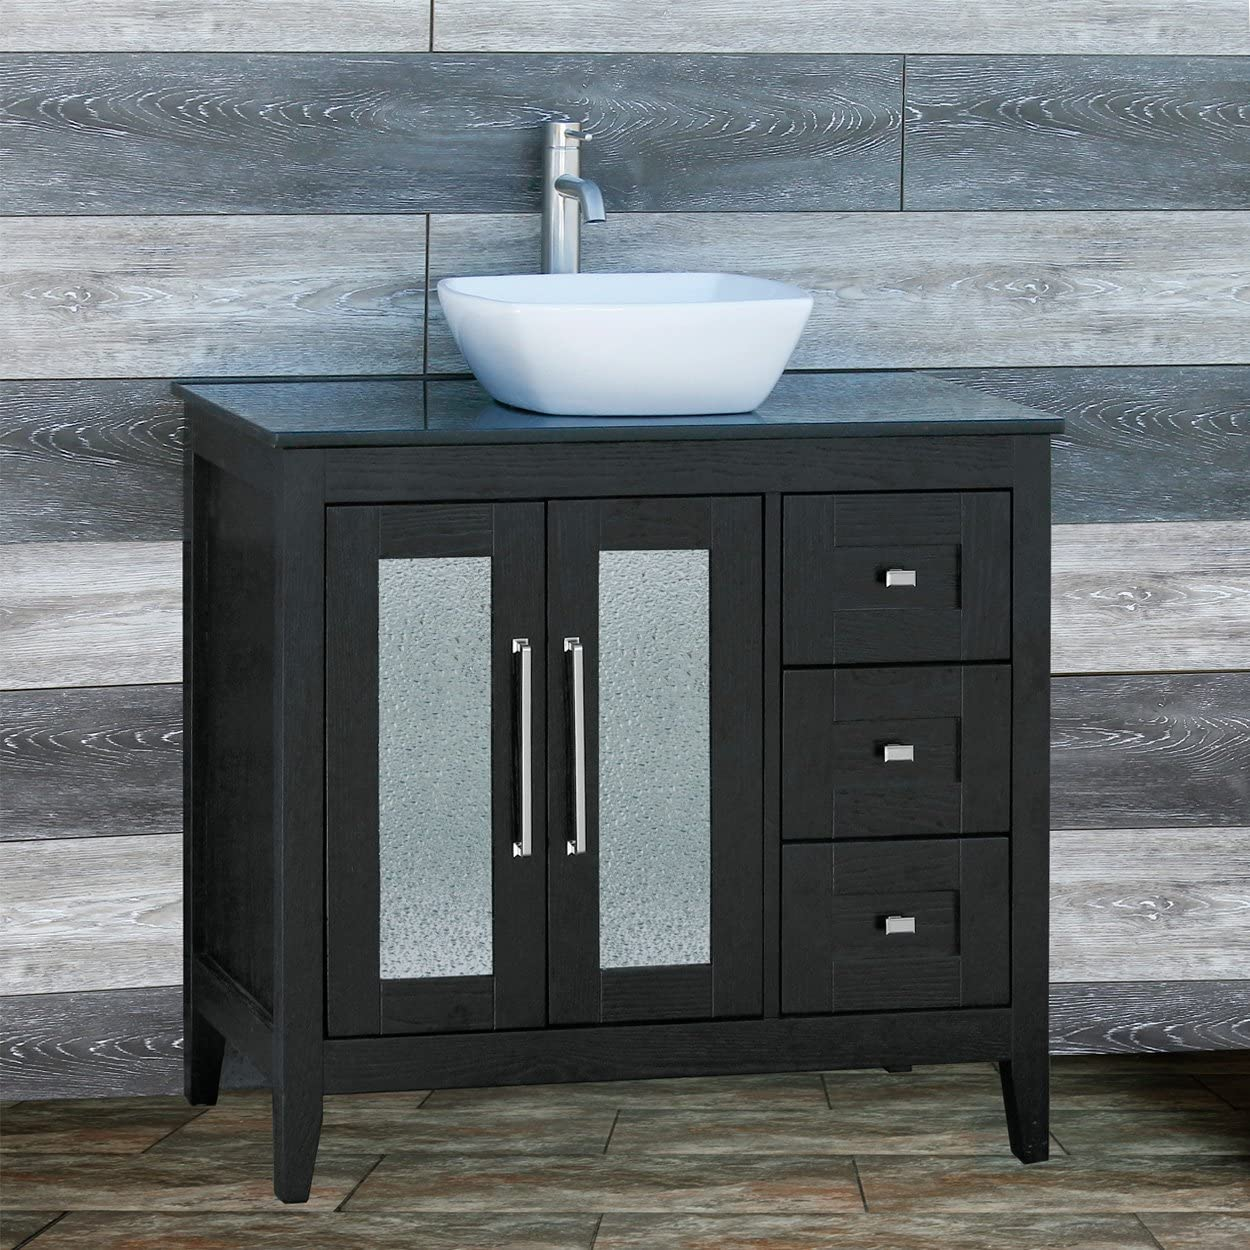 Amazon Com Solid Wood 36 Bathroom Vanity Cabinet Black Granite Top Vessel Sink Tr6 Kitchen Dining